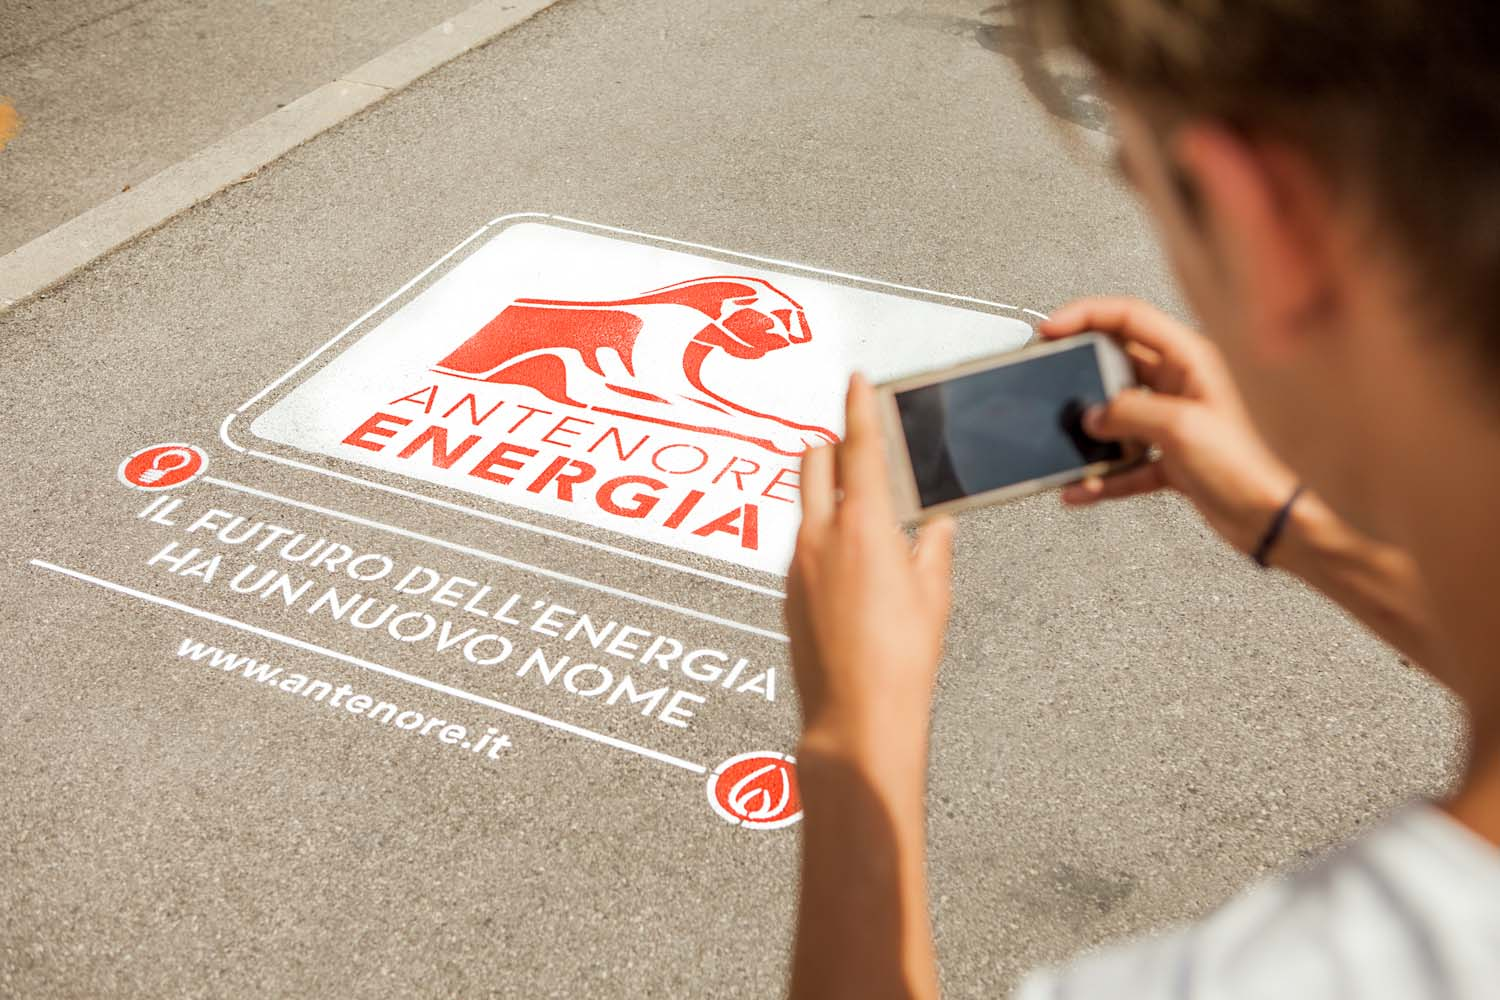 street marketing antenore energia